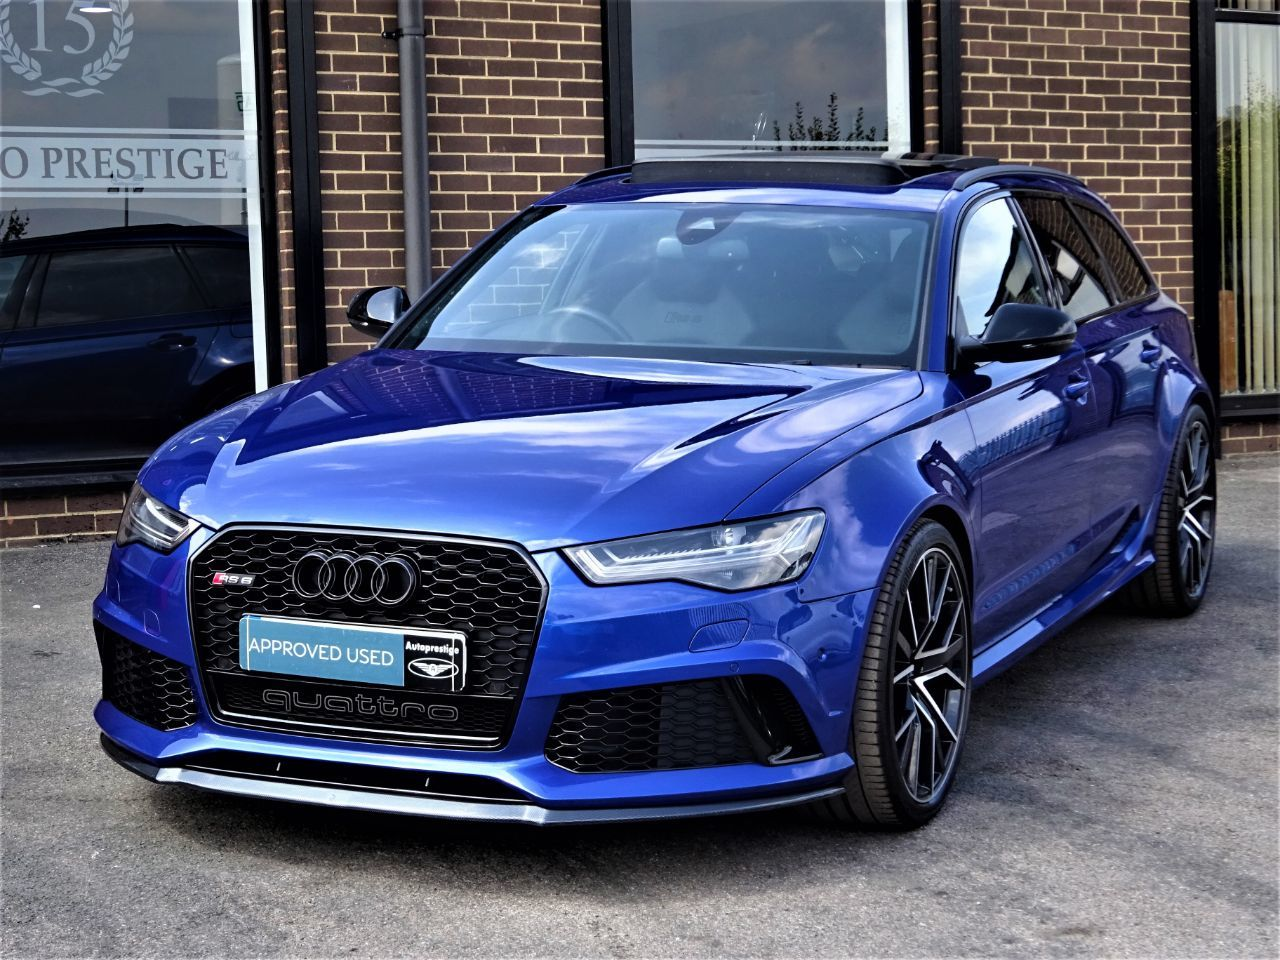 Audi RS6 4.0T FSI Quattro RS 6 Performance 5dr Tip Auto MASSIVE SPEC MANY EXTRAS 1 OWNER Estate Petrol BlueAudi RS6 4.0T FSI Quattro RS 6 Performance 5dr Tip Auto MASSIVE SPEC MANY EXTRAS 1 OWNER Estate Petrol Blue at Autoprestige Bradford